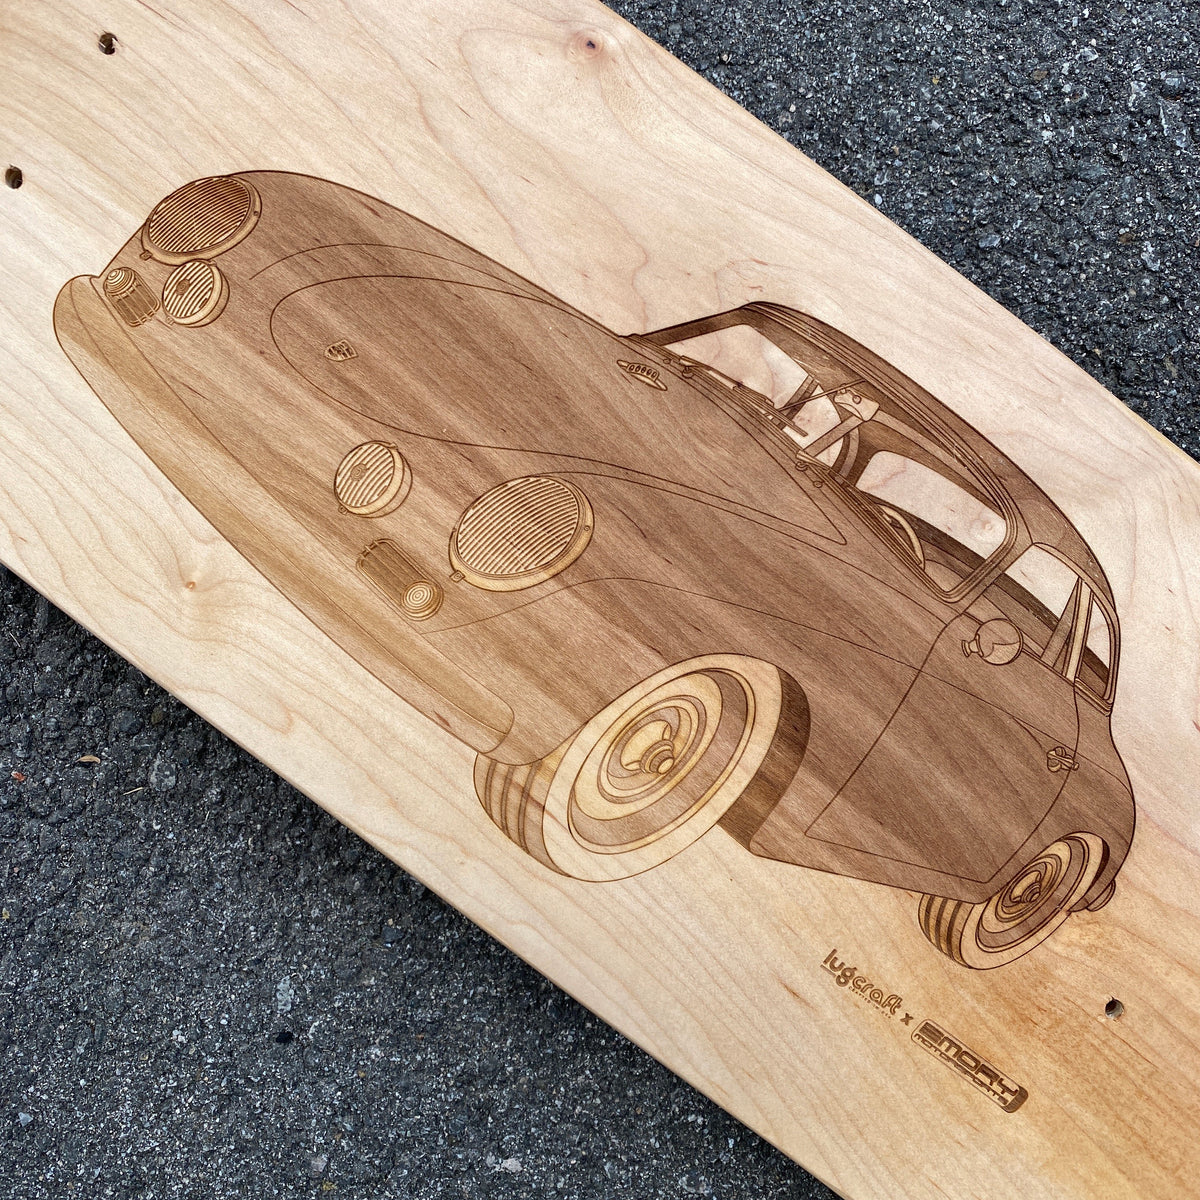 Emory Outlaw 356 Special Cabriolet Skateboard Deck Art - Lugcraft